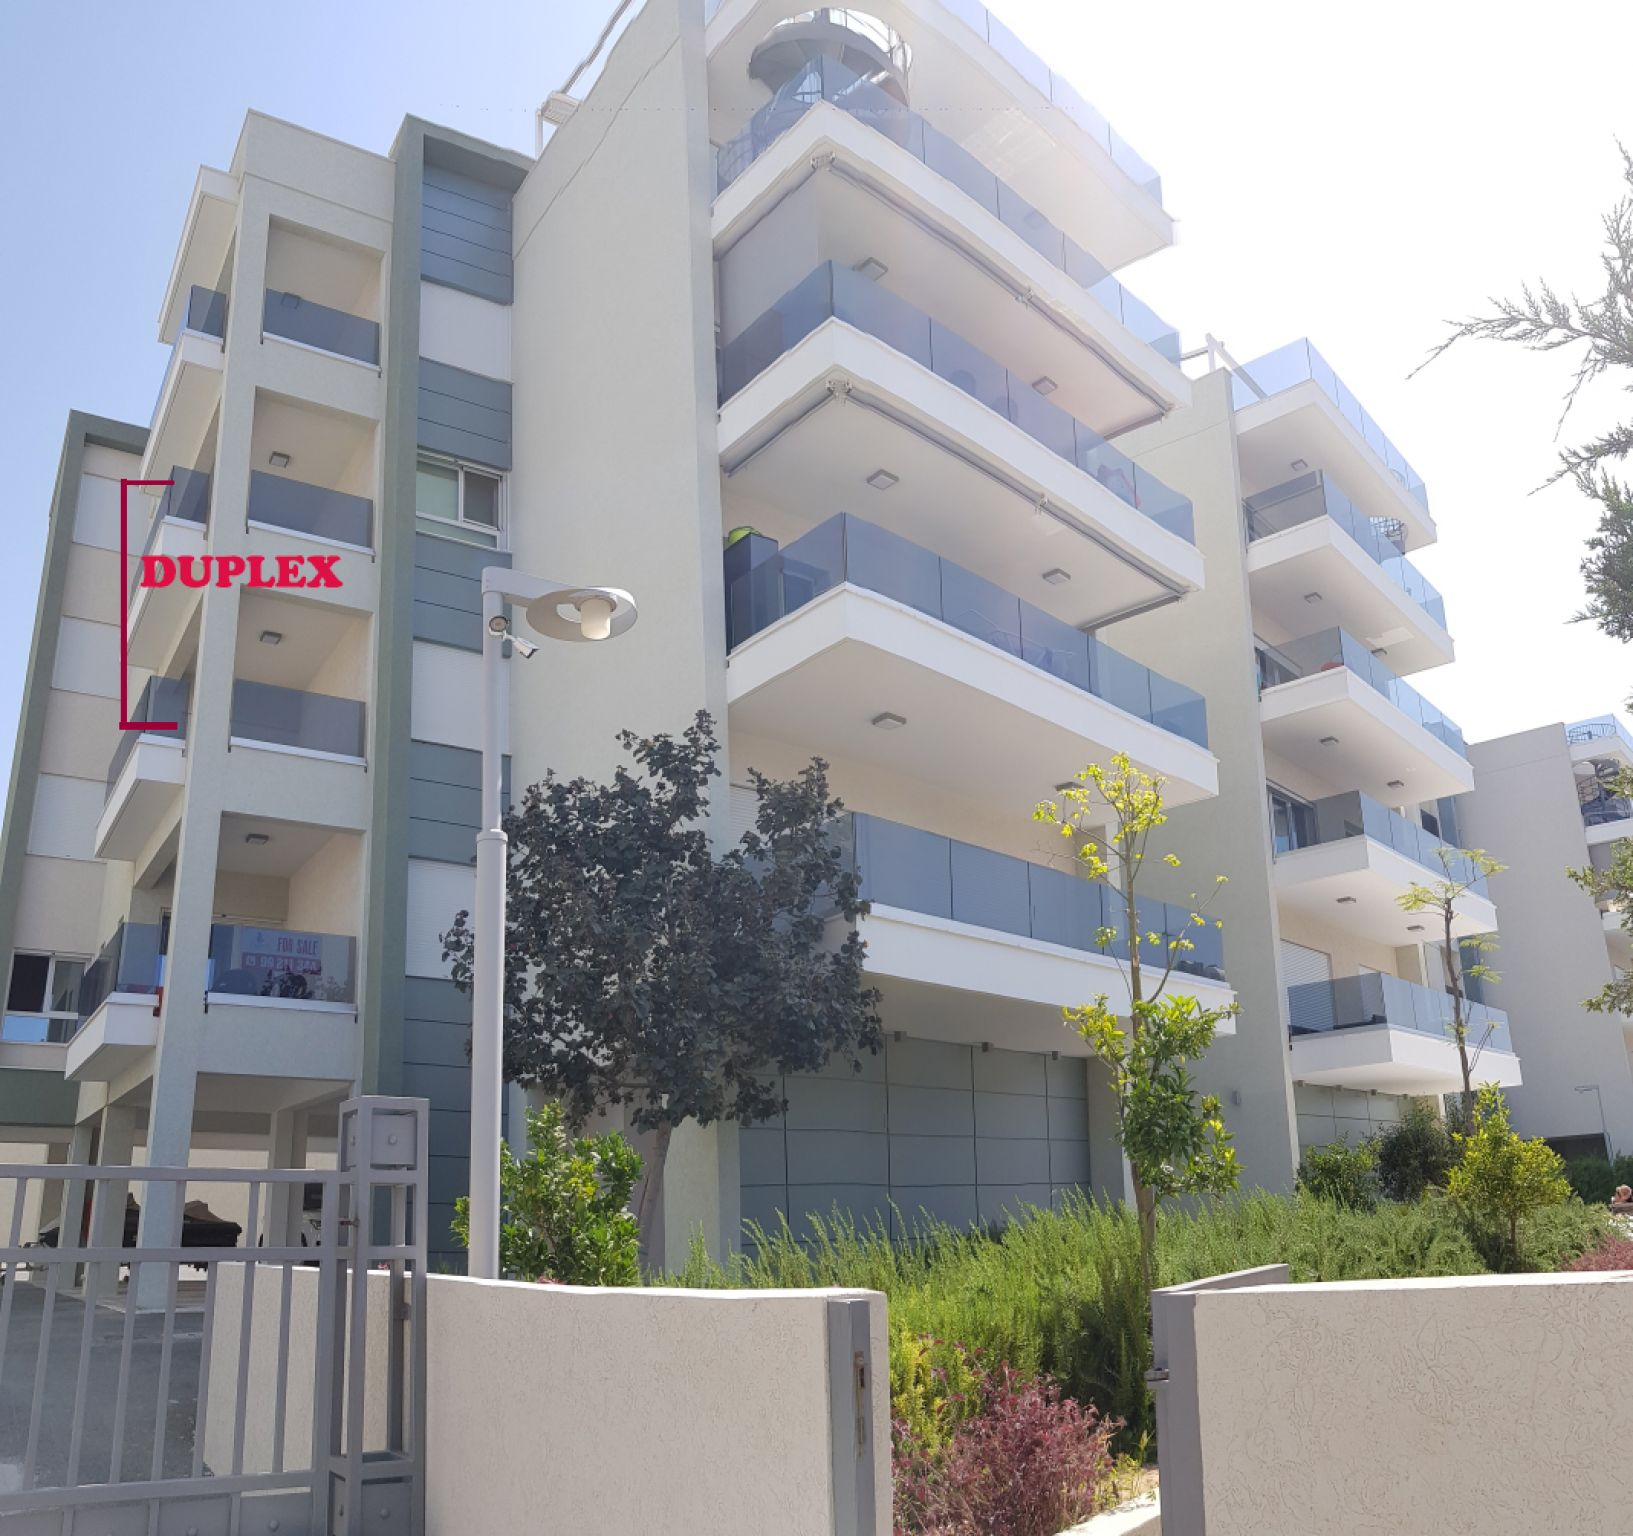 3 bedroom Duplex apartment 2nd/3rd floor with sea view in Am.....